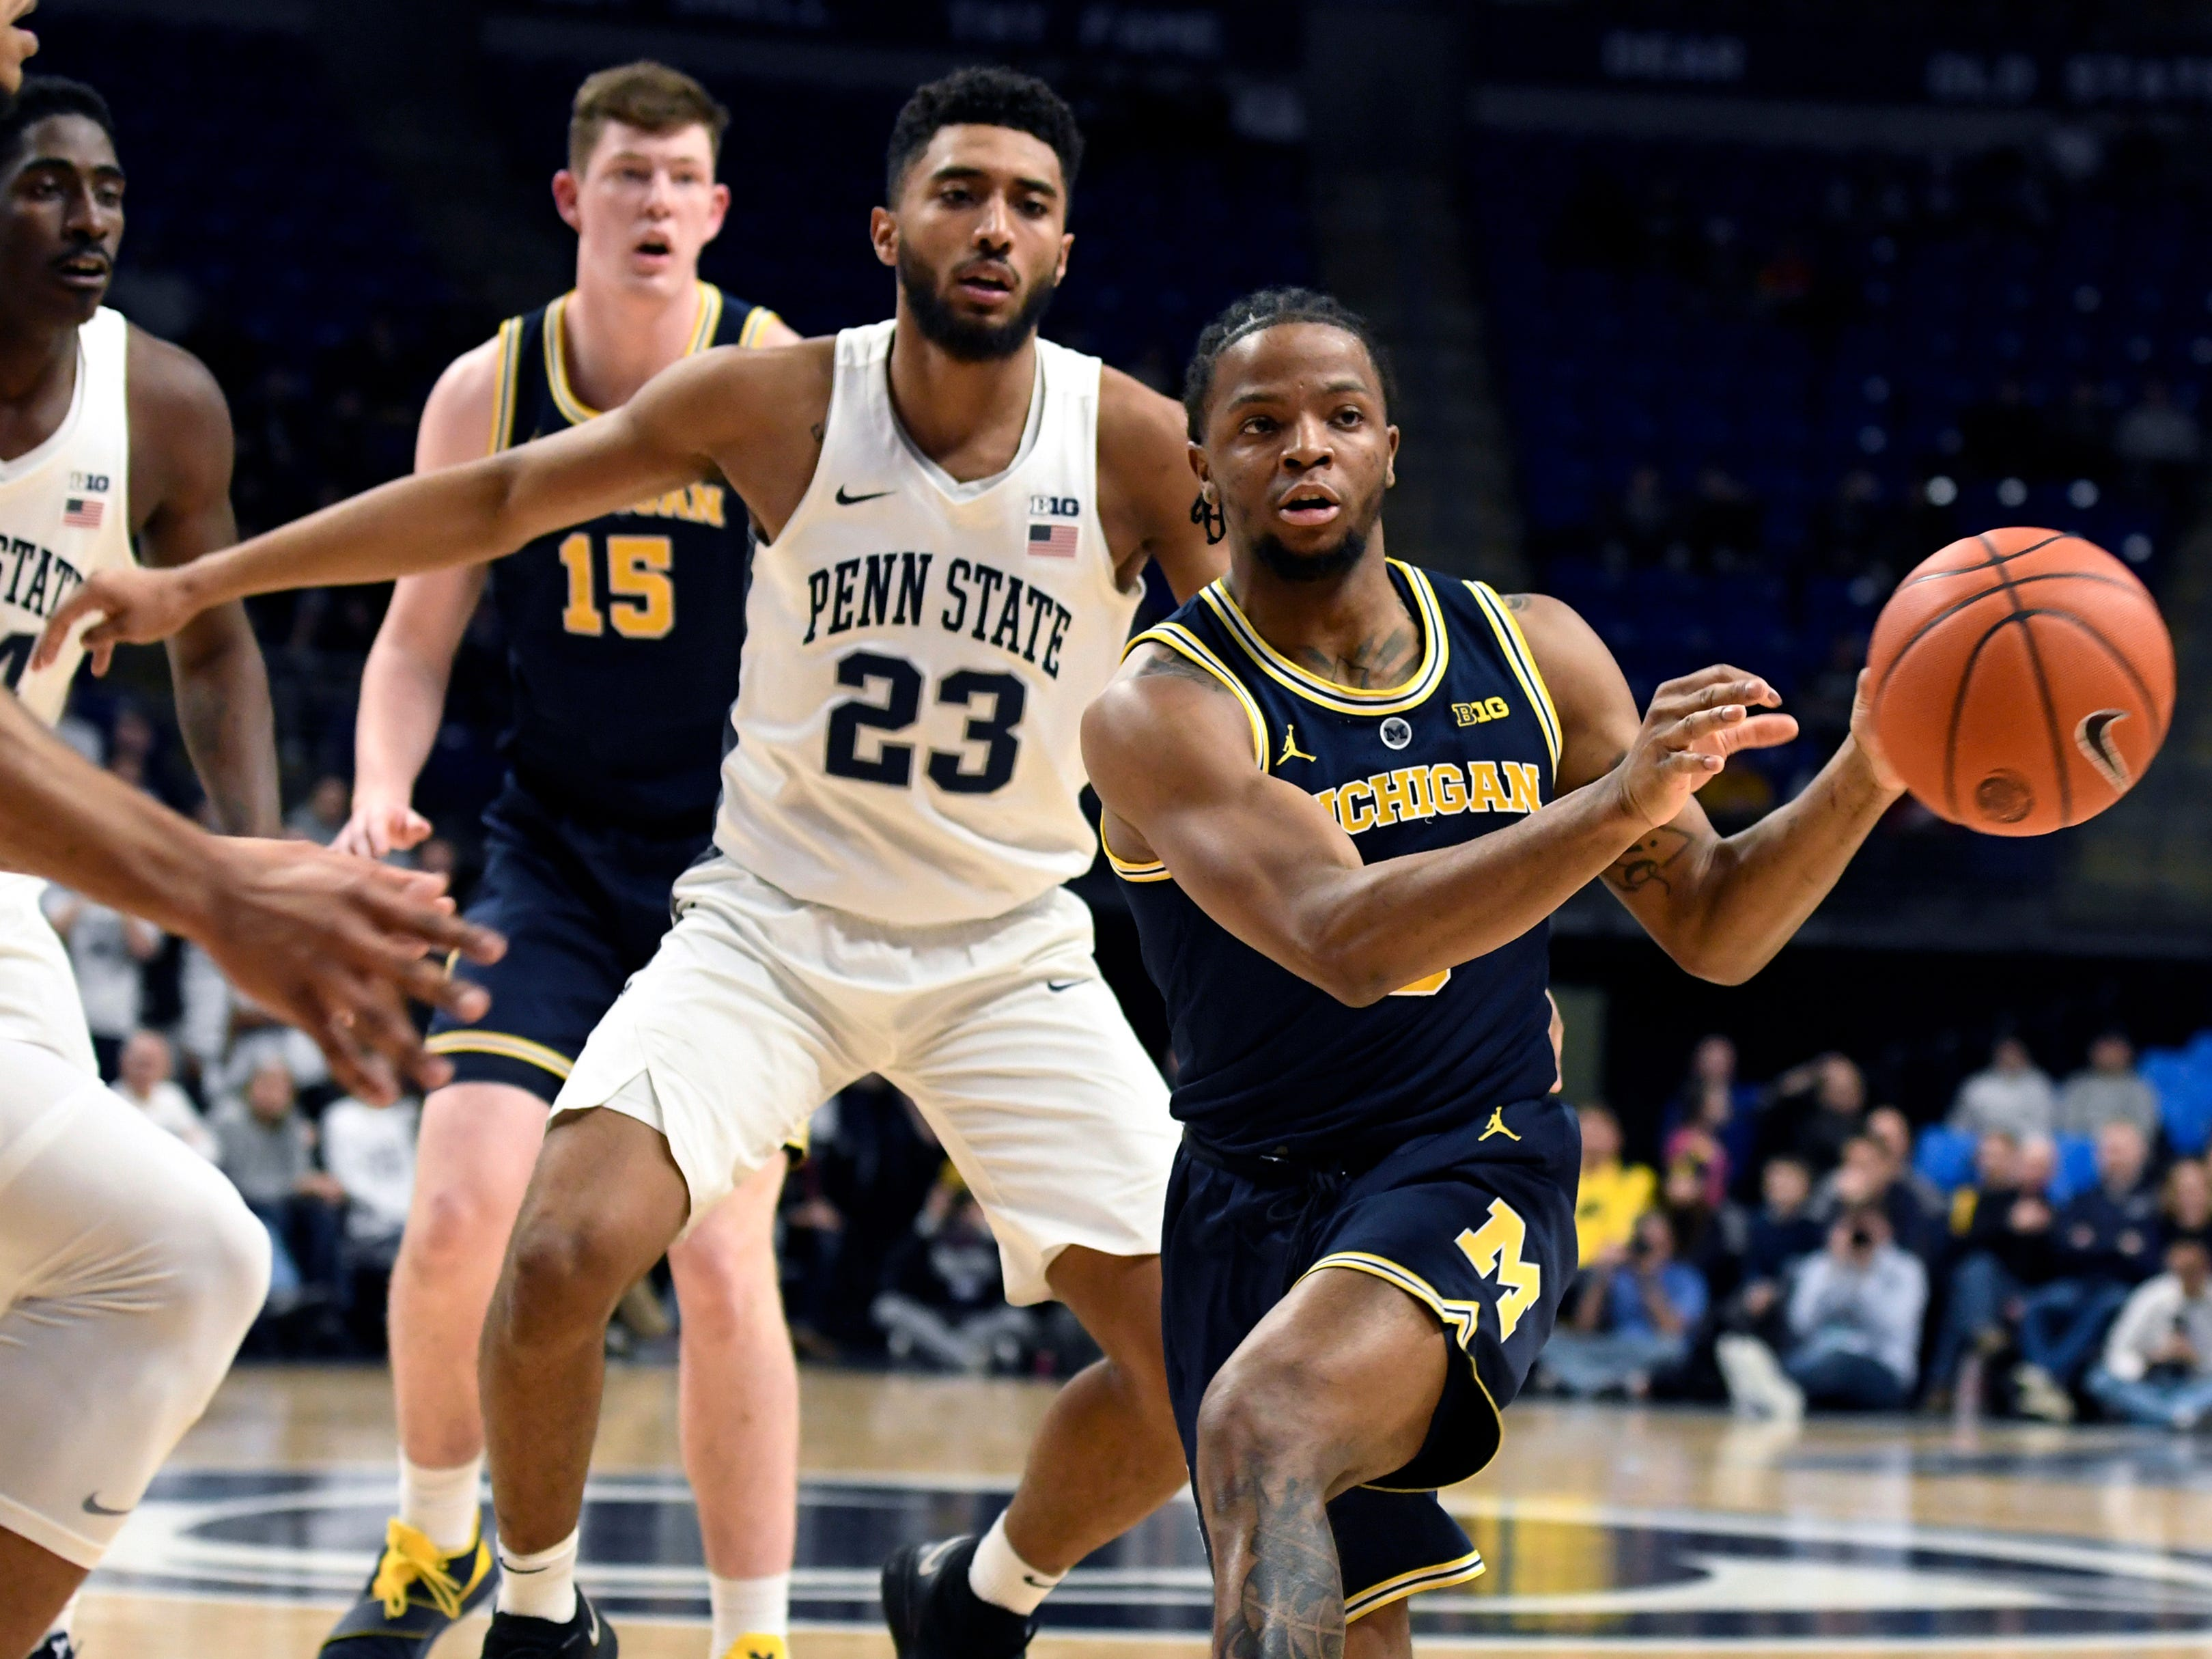 Michigan guard Zavier Simpson (3) passes the ball as Penn State guard Josh Reaves (23) defends during the first half.